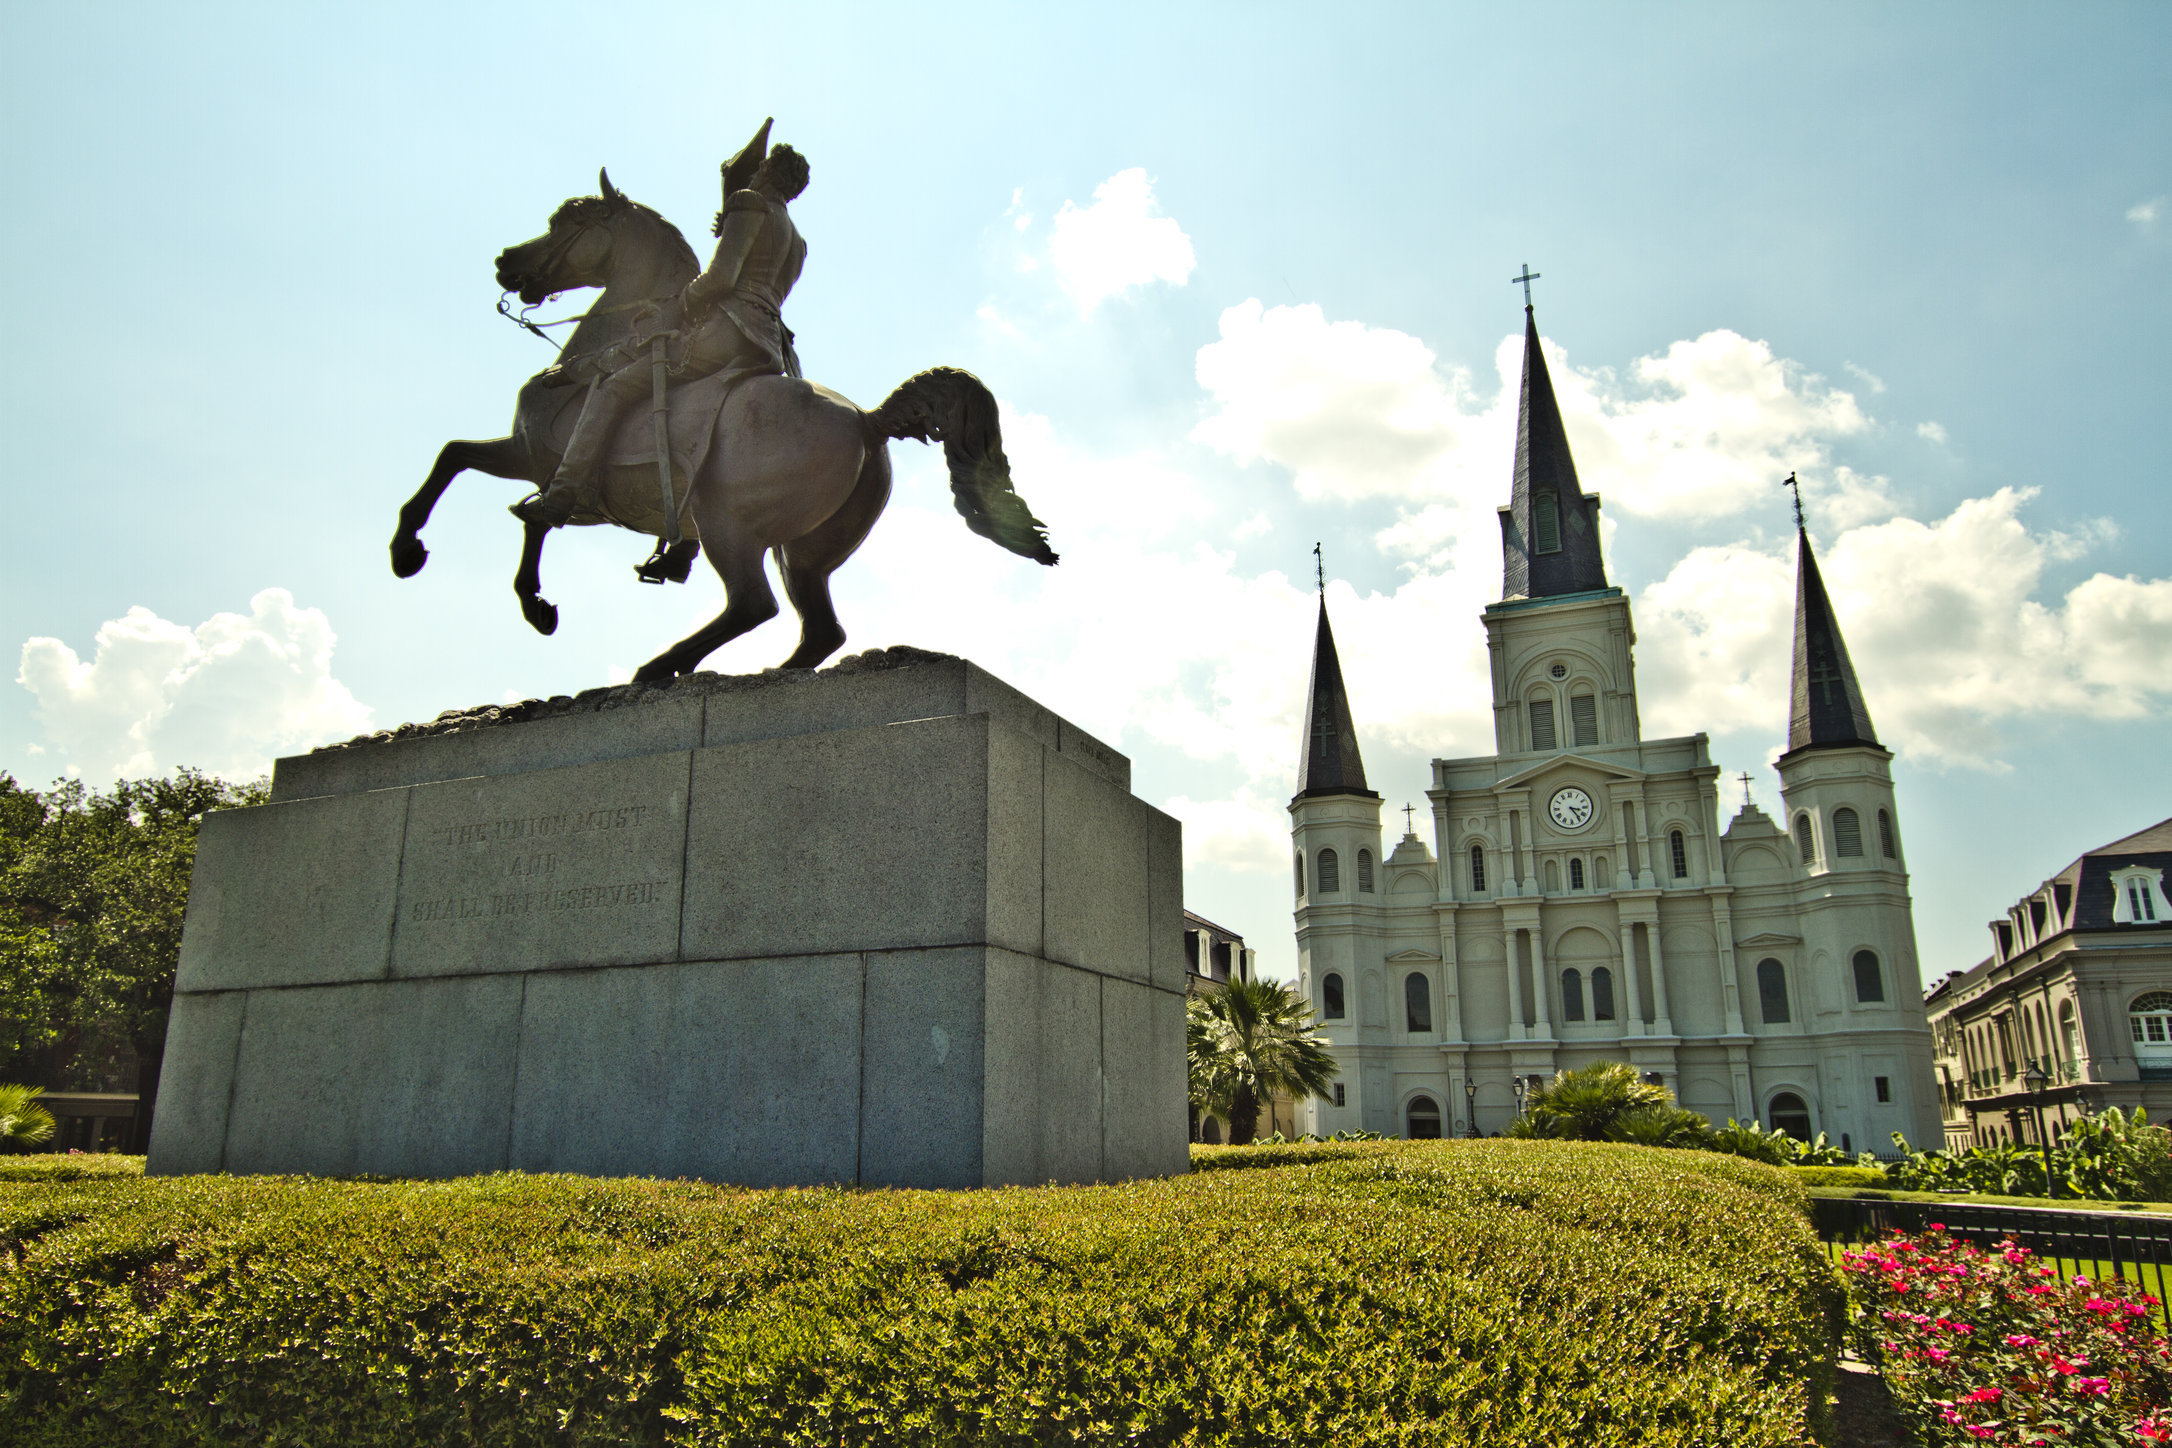 New Orleans, U.S.A. 2010.